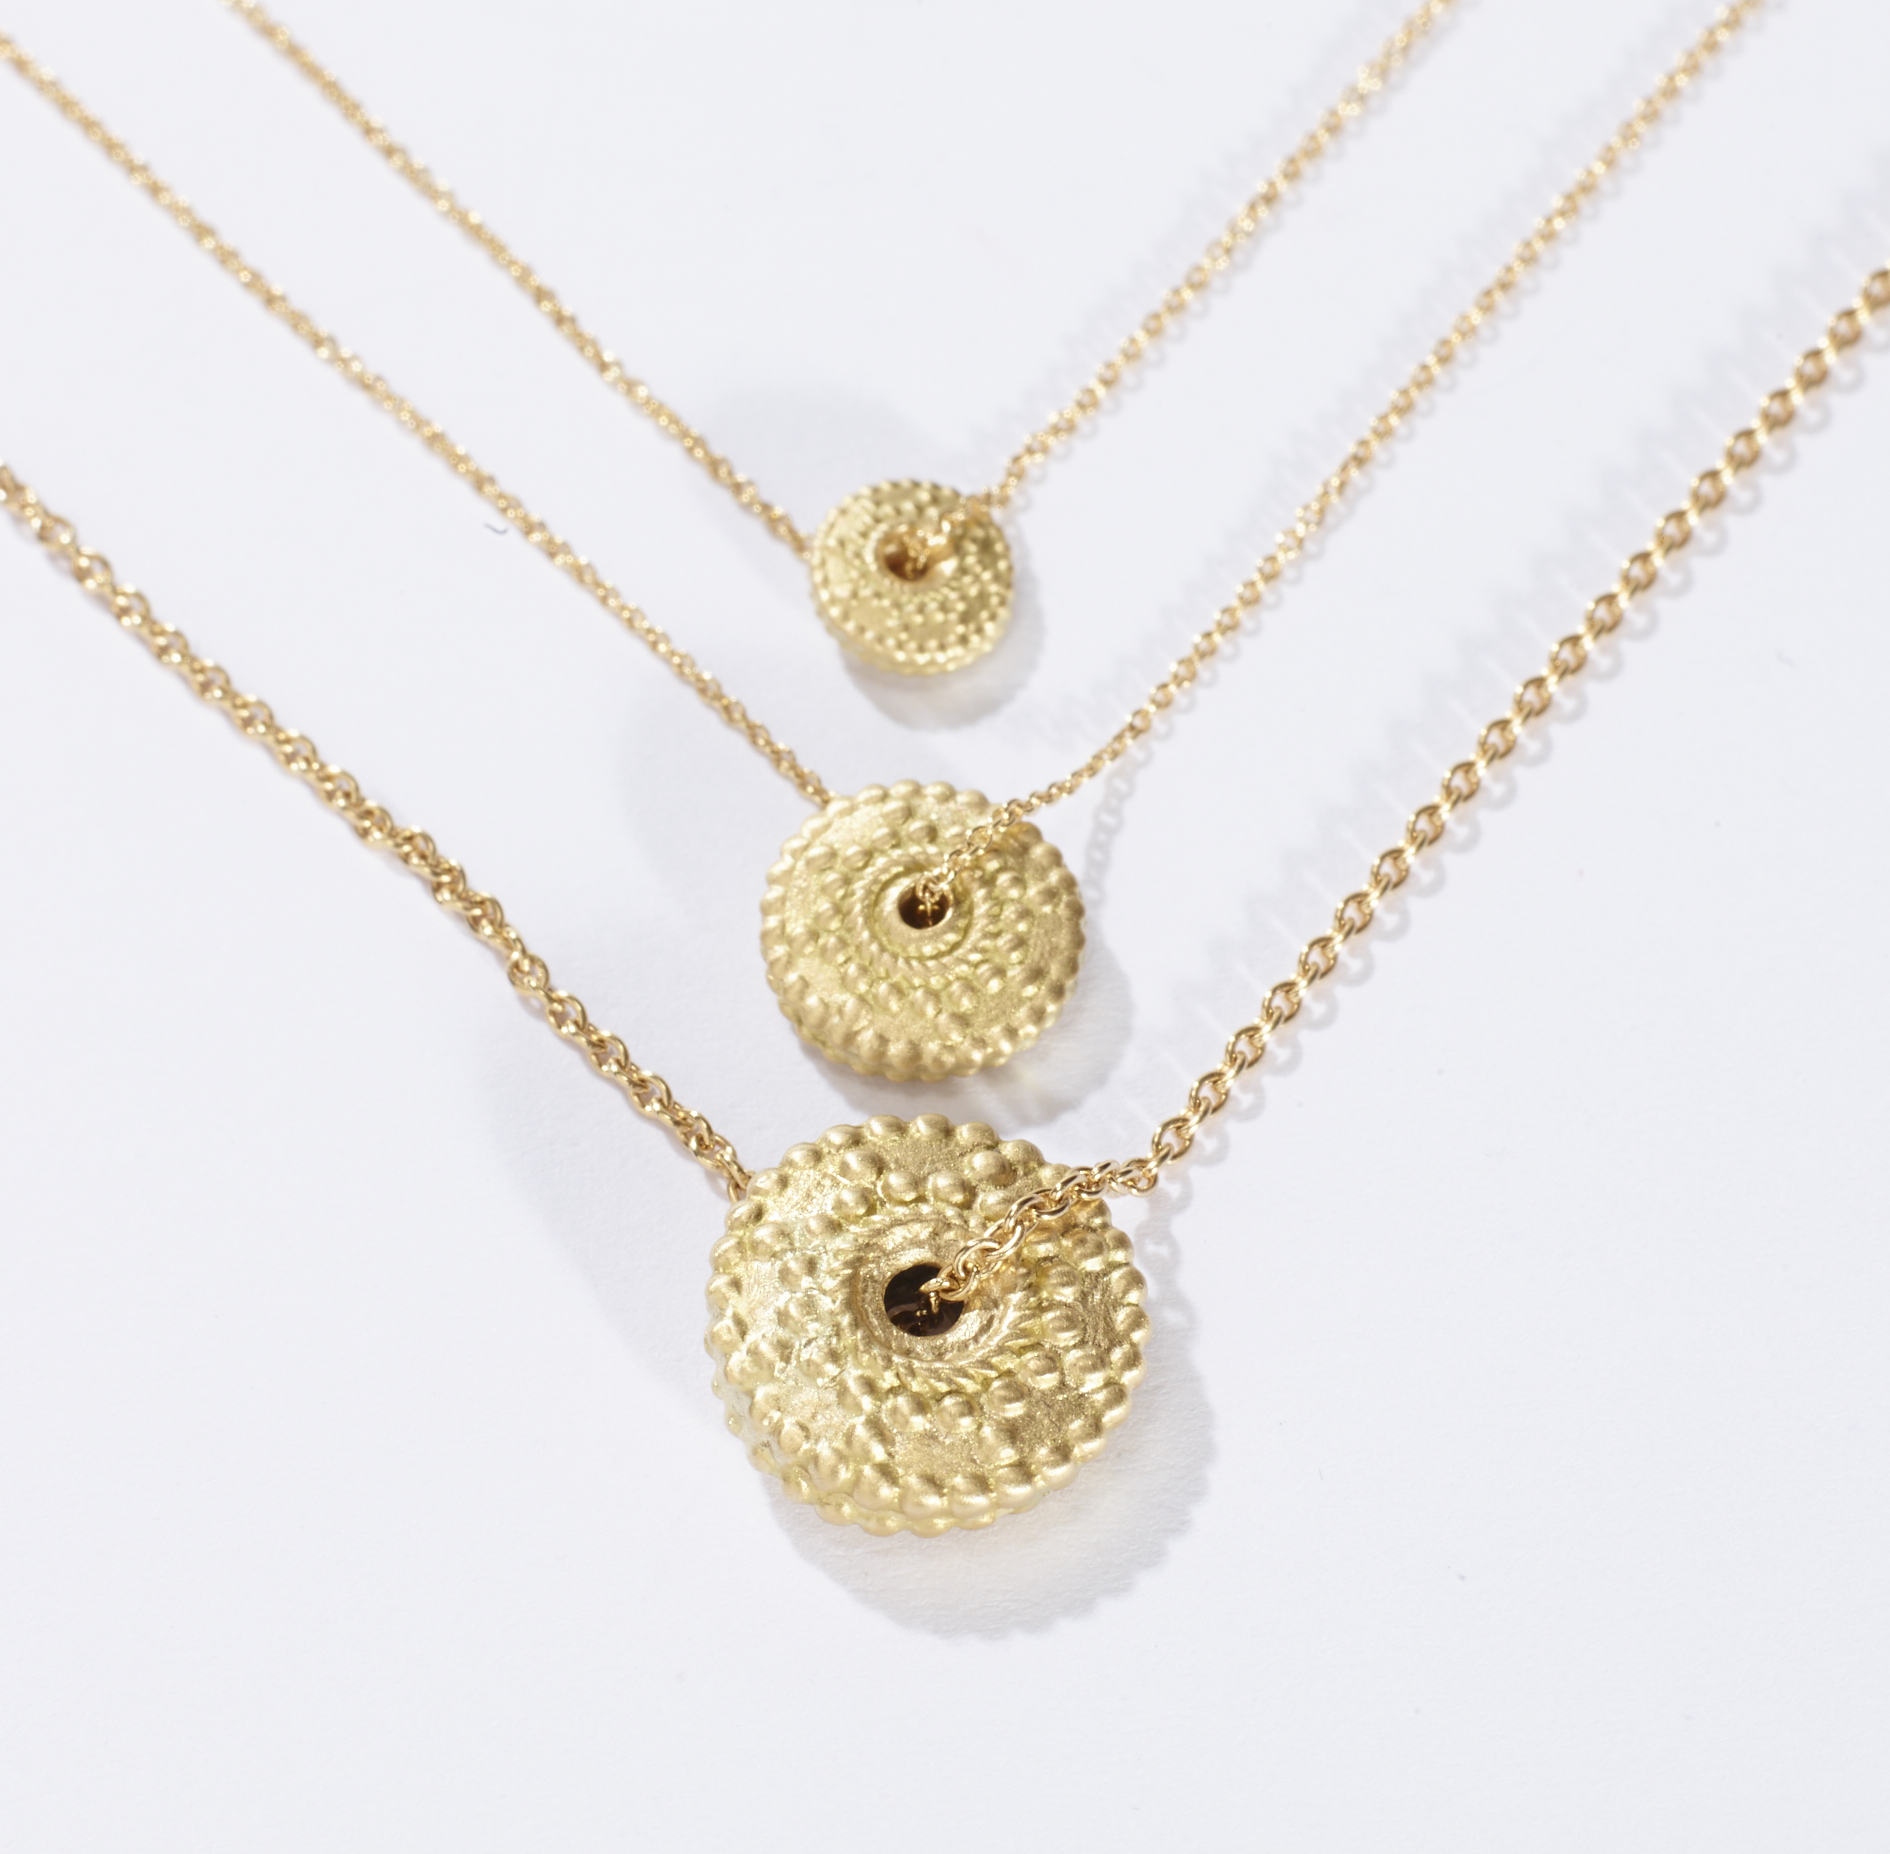 Granulated Pendant Collection